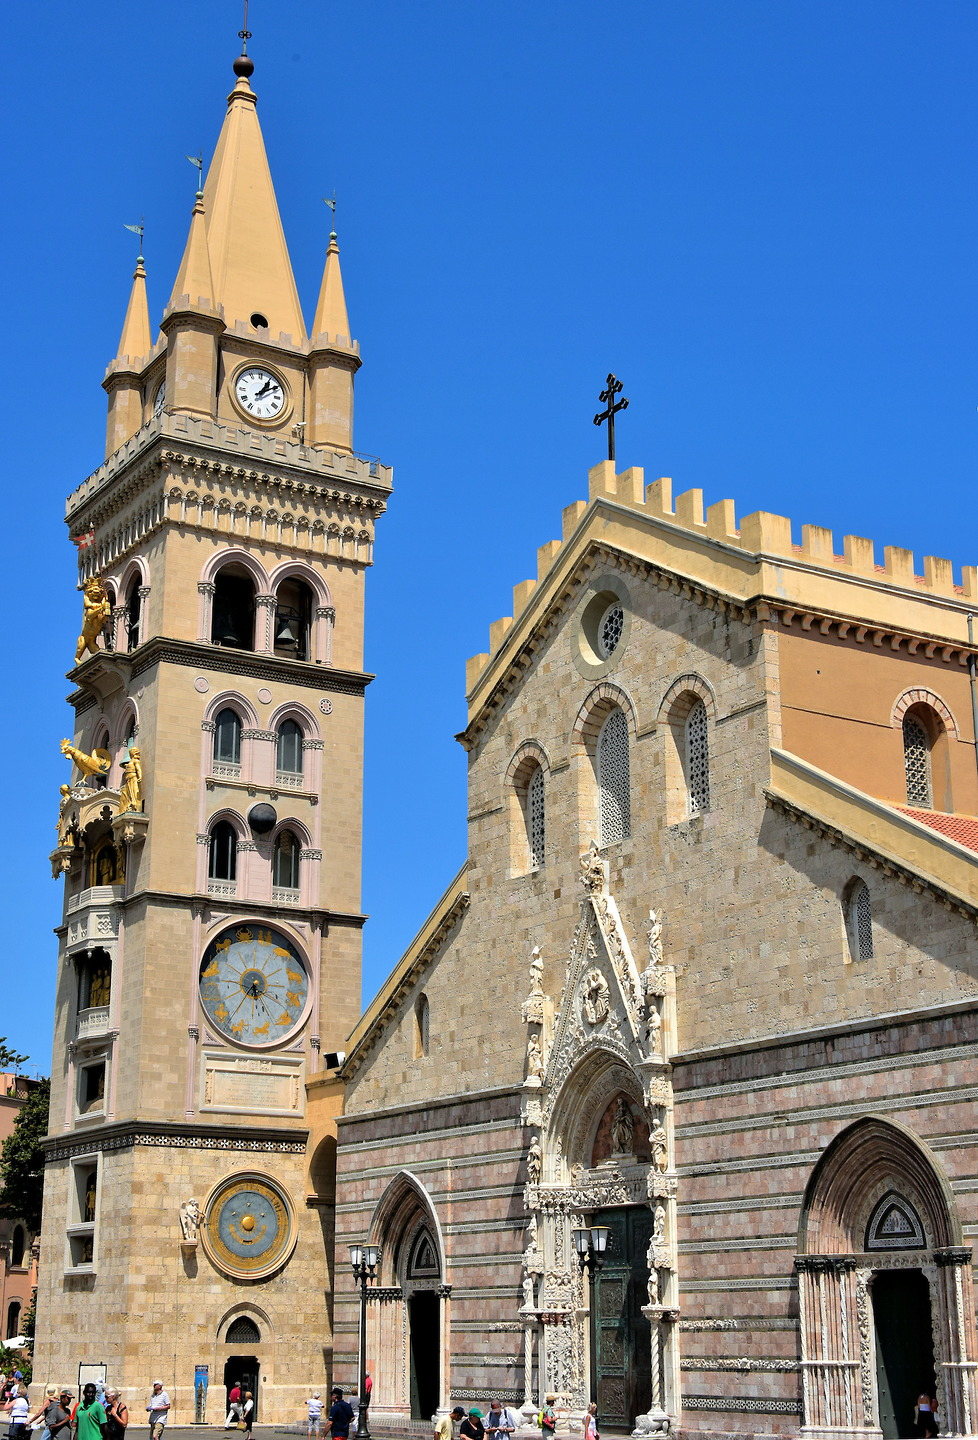 Cathedral of Messina in Messina, Italy - Encircle Photos